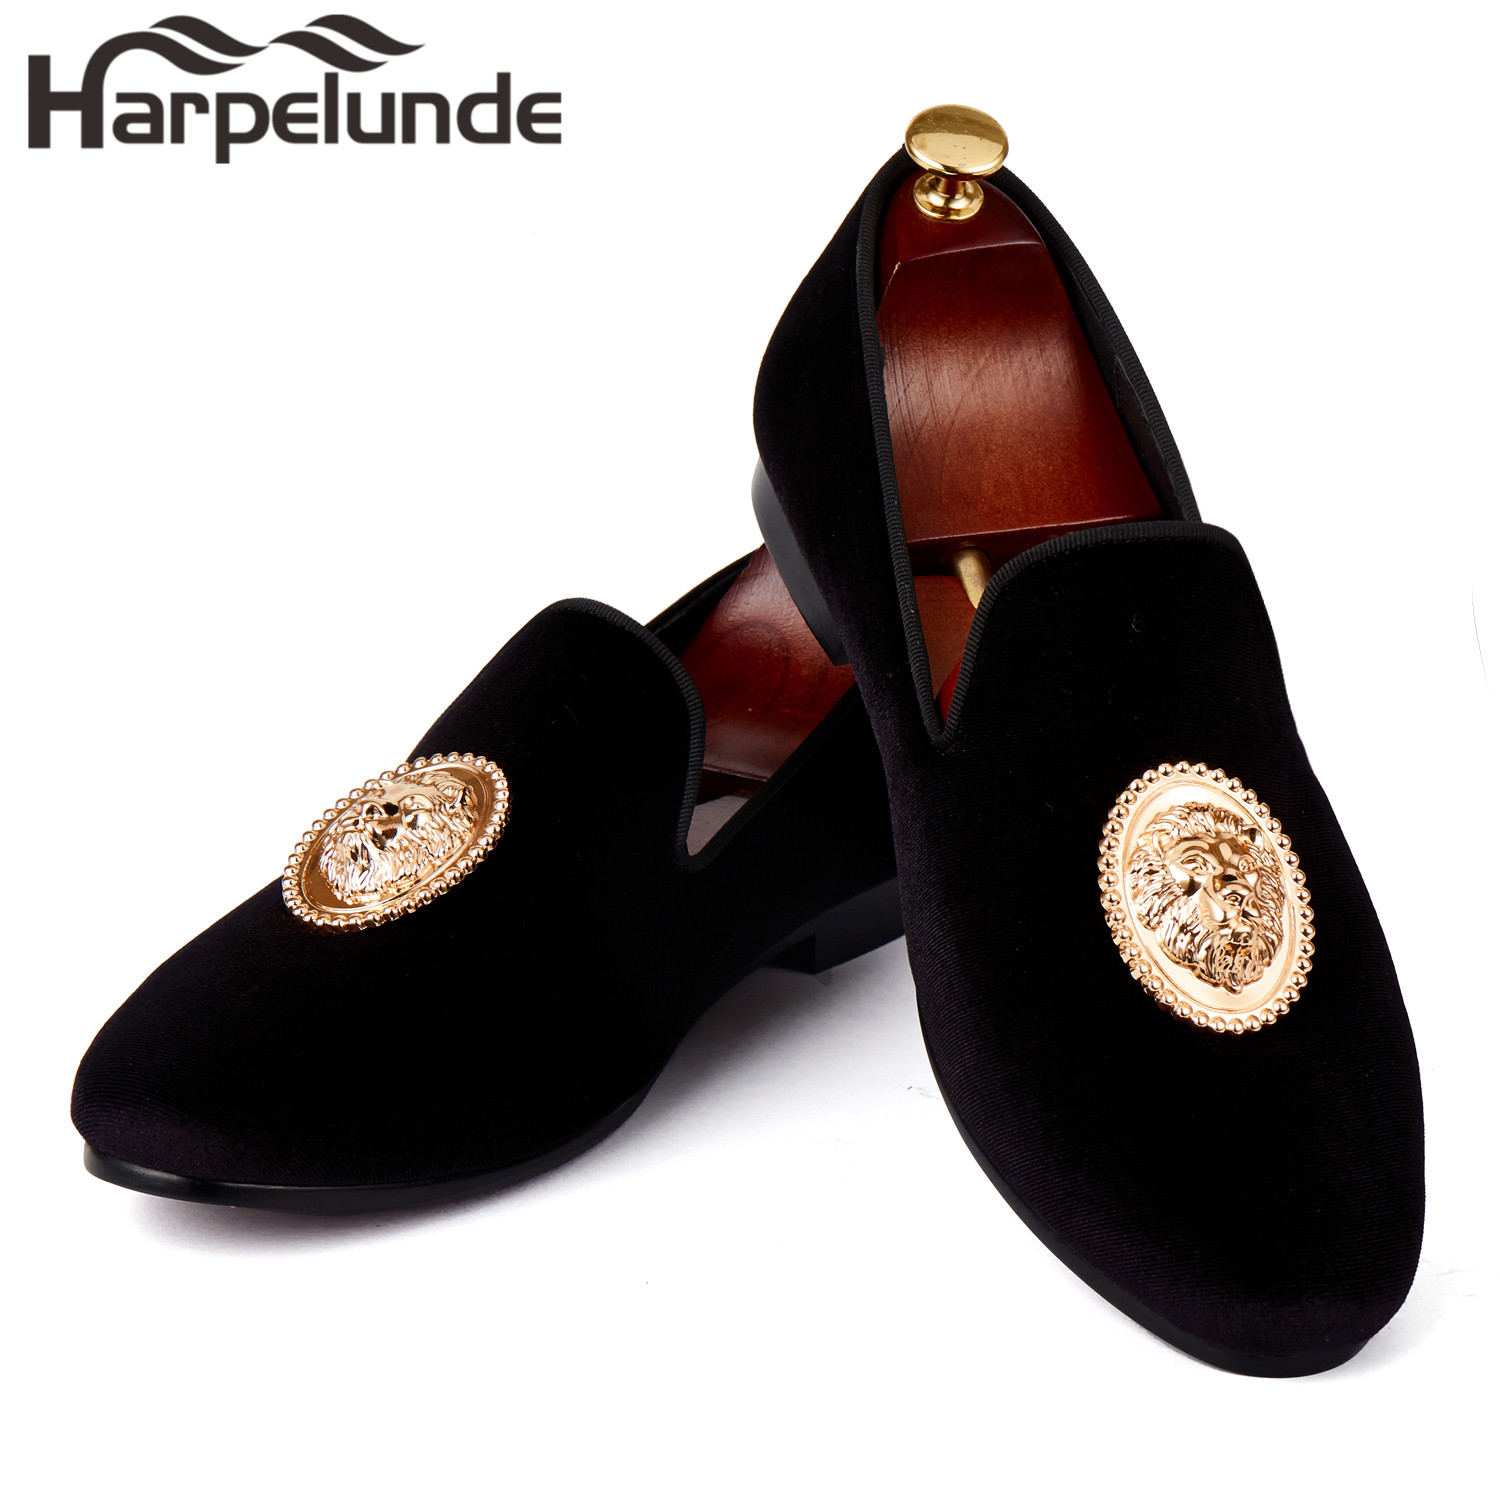 Harpelunde Men Event Sko Lion Buckle Dress Sko Black Velvet Loafer Tøfler Størrelse 6-14